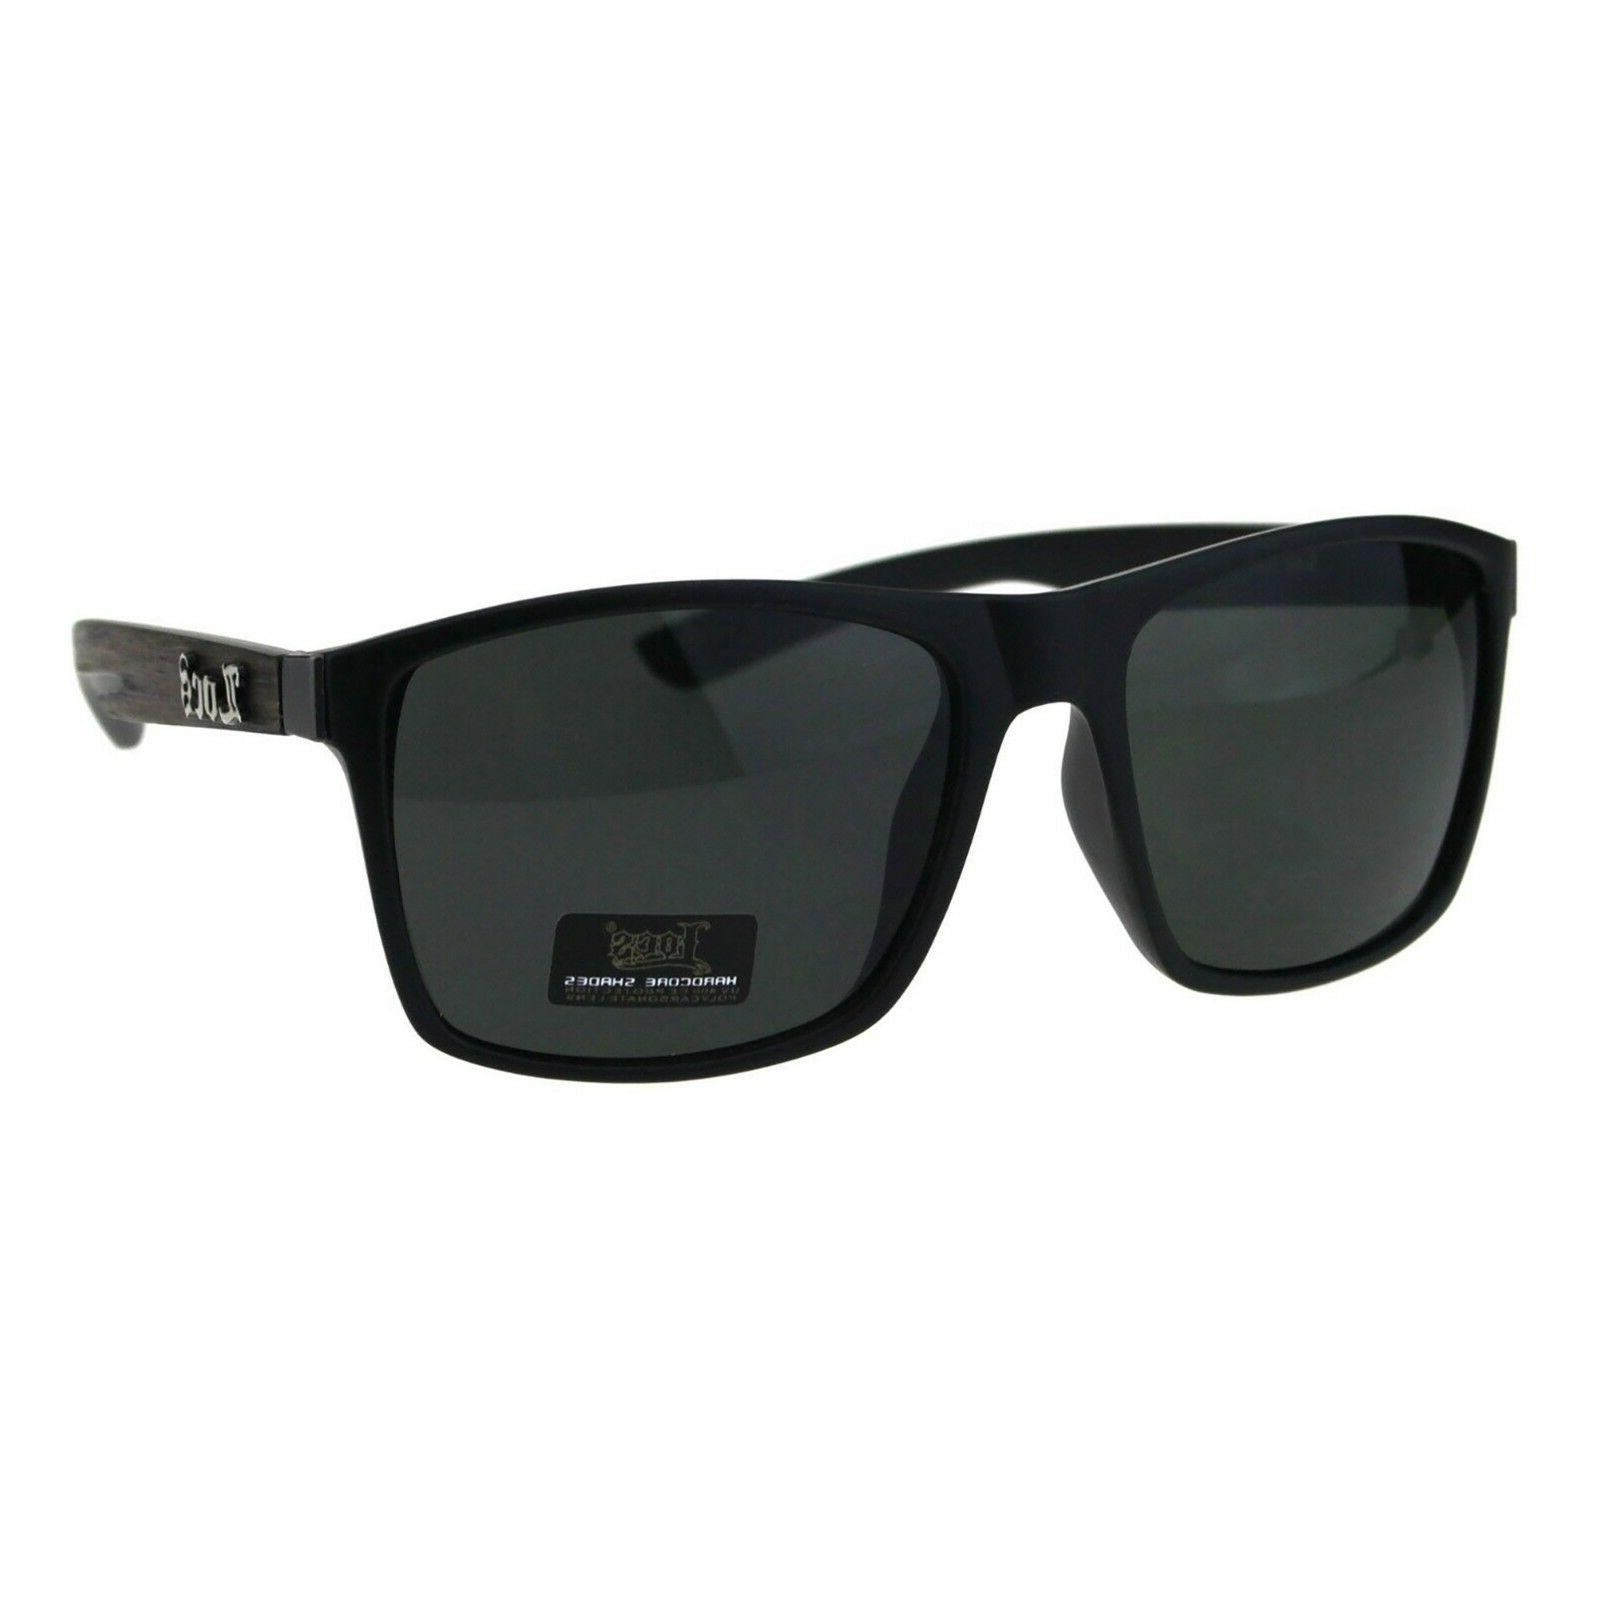 mens sunglasses matted black wood print square